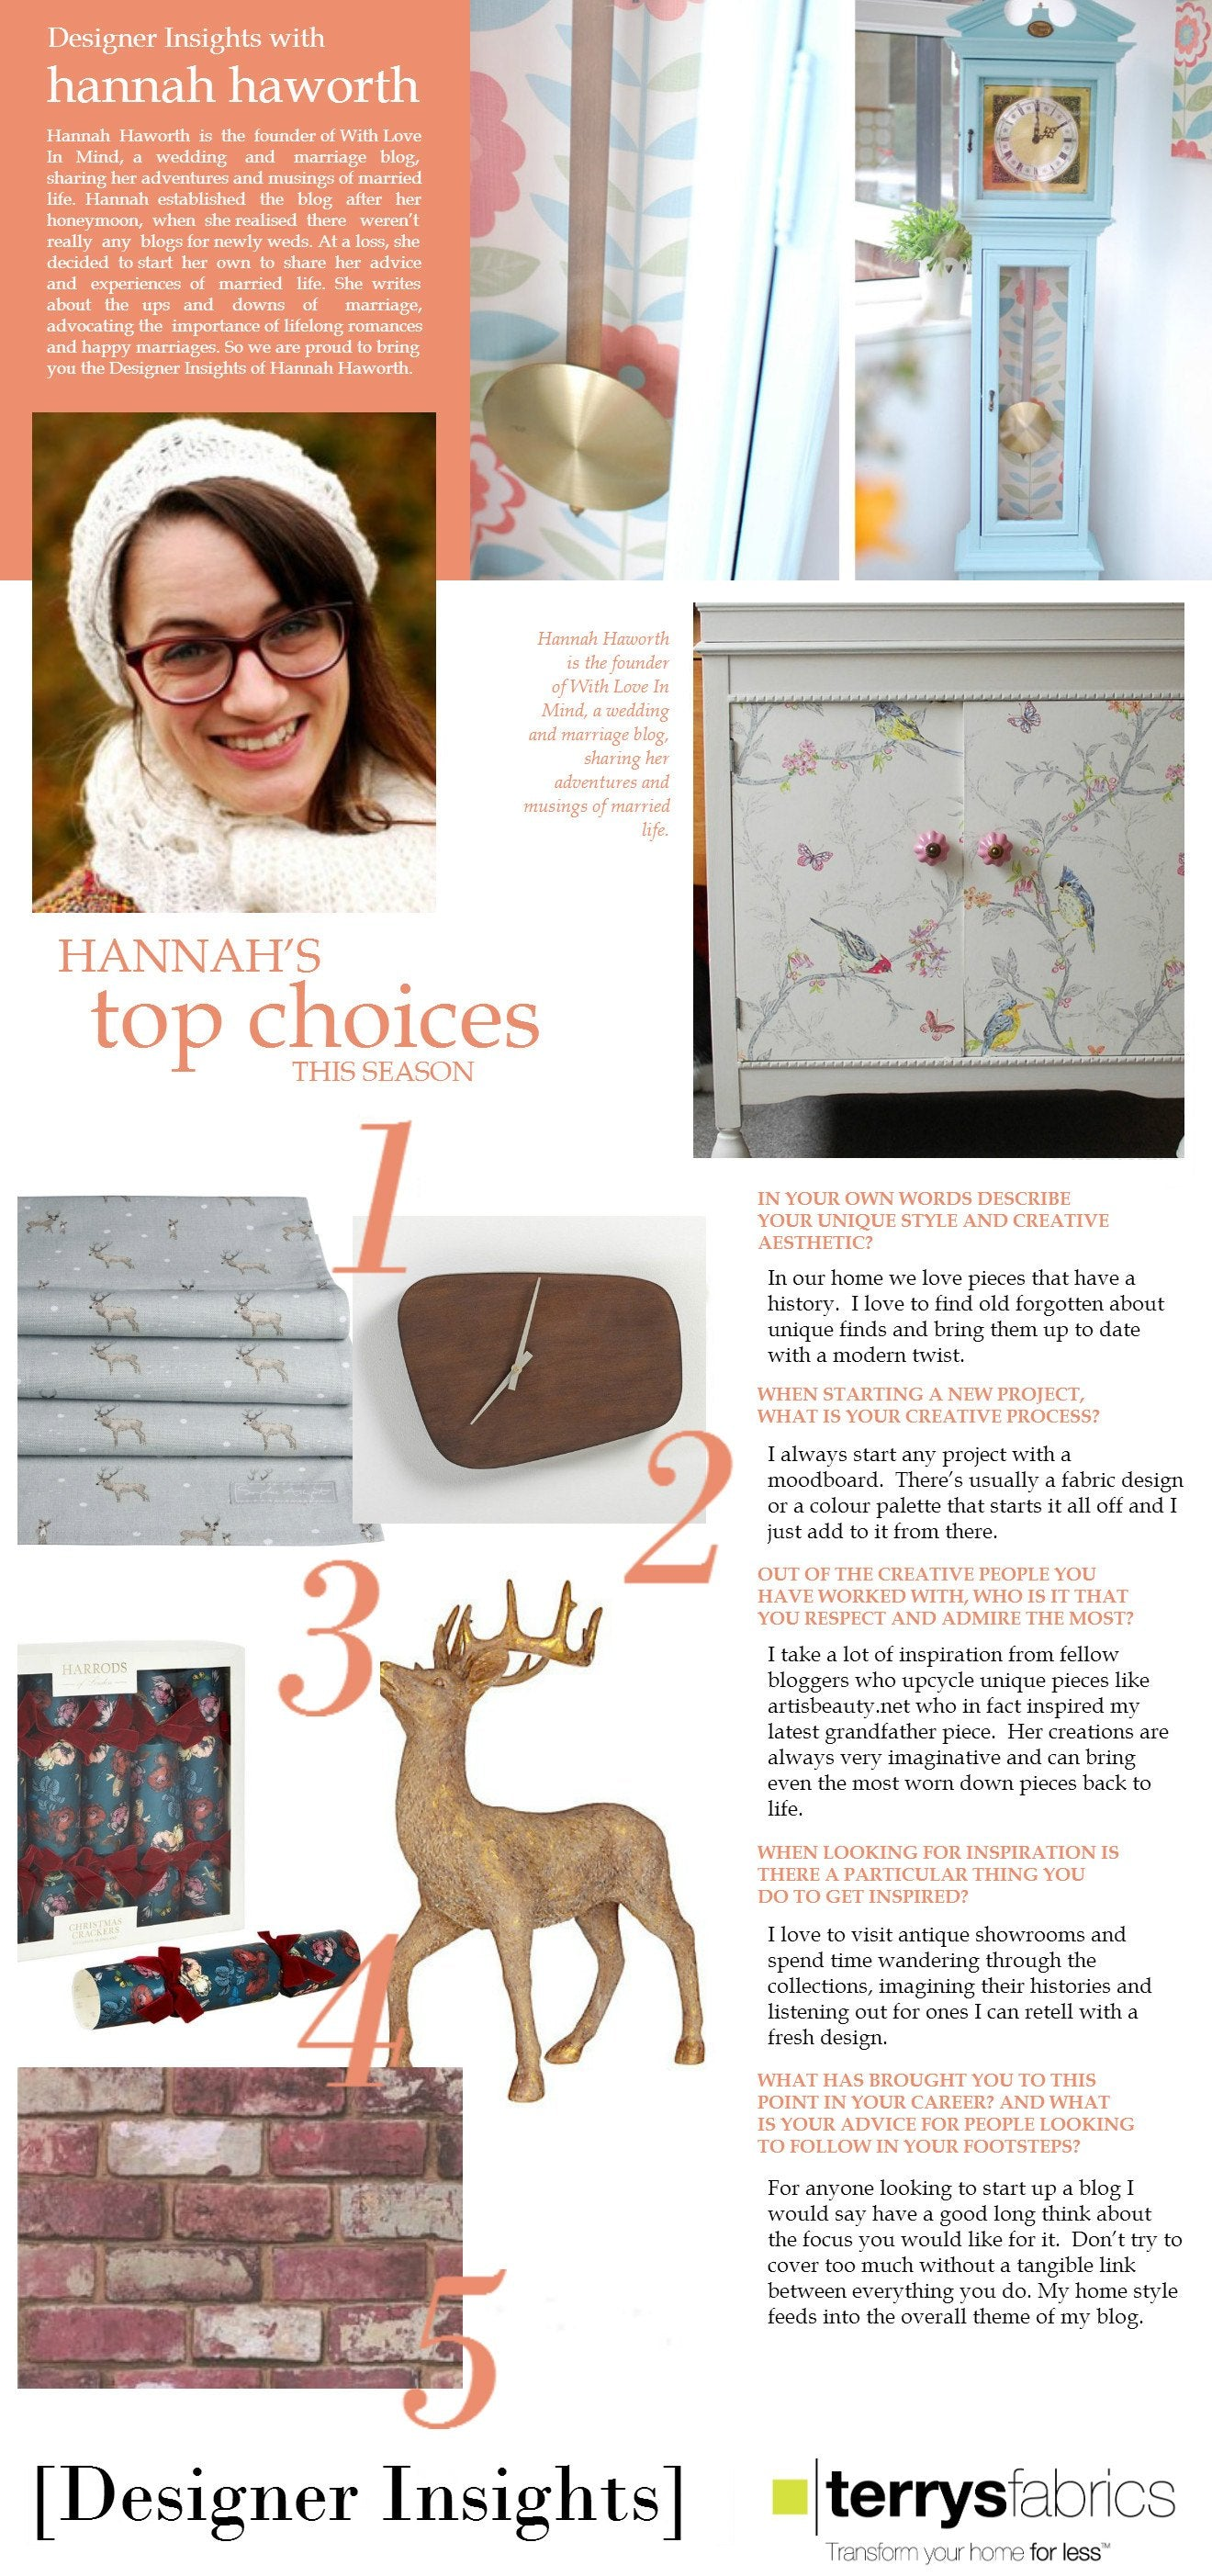 Designer Insights - Hannah Haworth